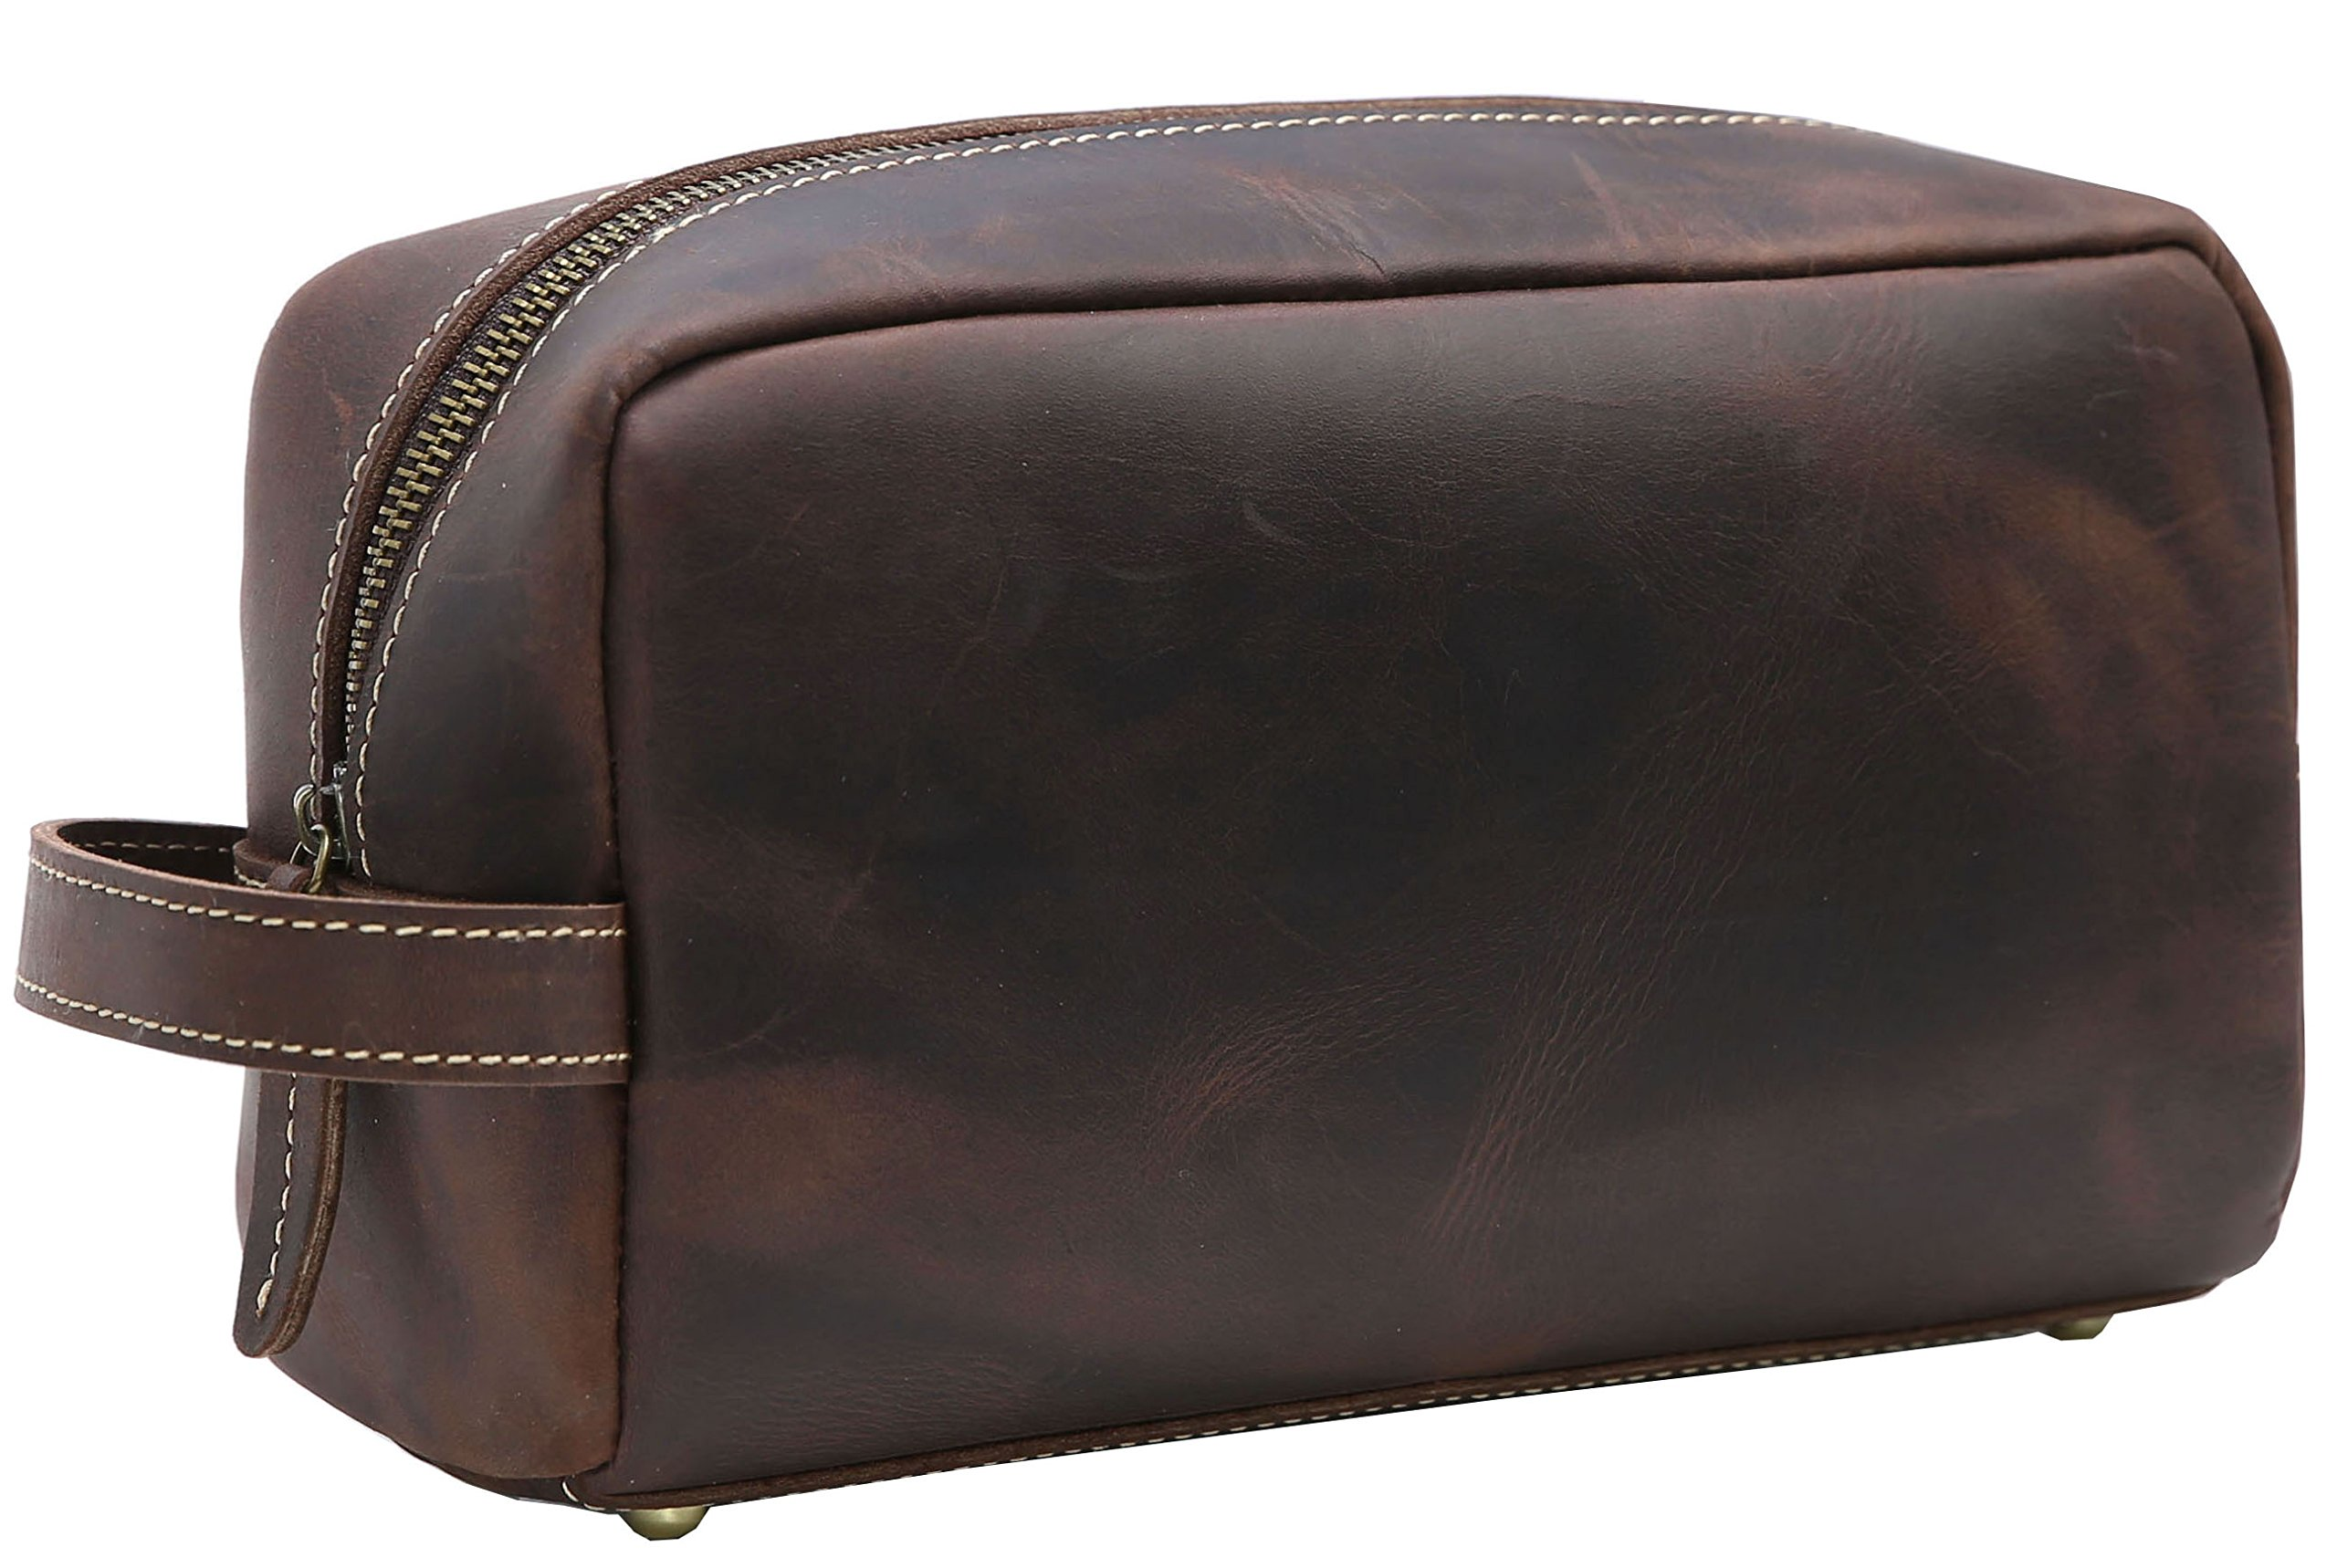 Iswee Leather Toiletry Bag for Men Wash Gargle, Cosmetic Bag Dopp Kit for Travel Plenty of room, Water Proof Lining, Easy to Open (Dark Brown)